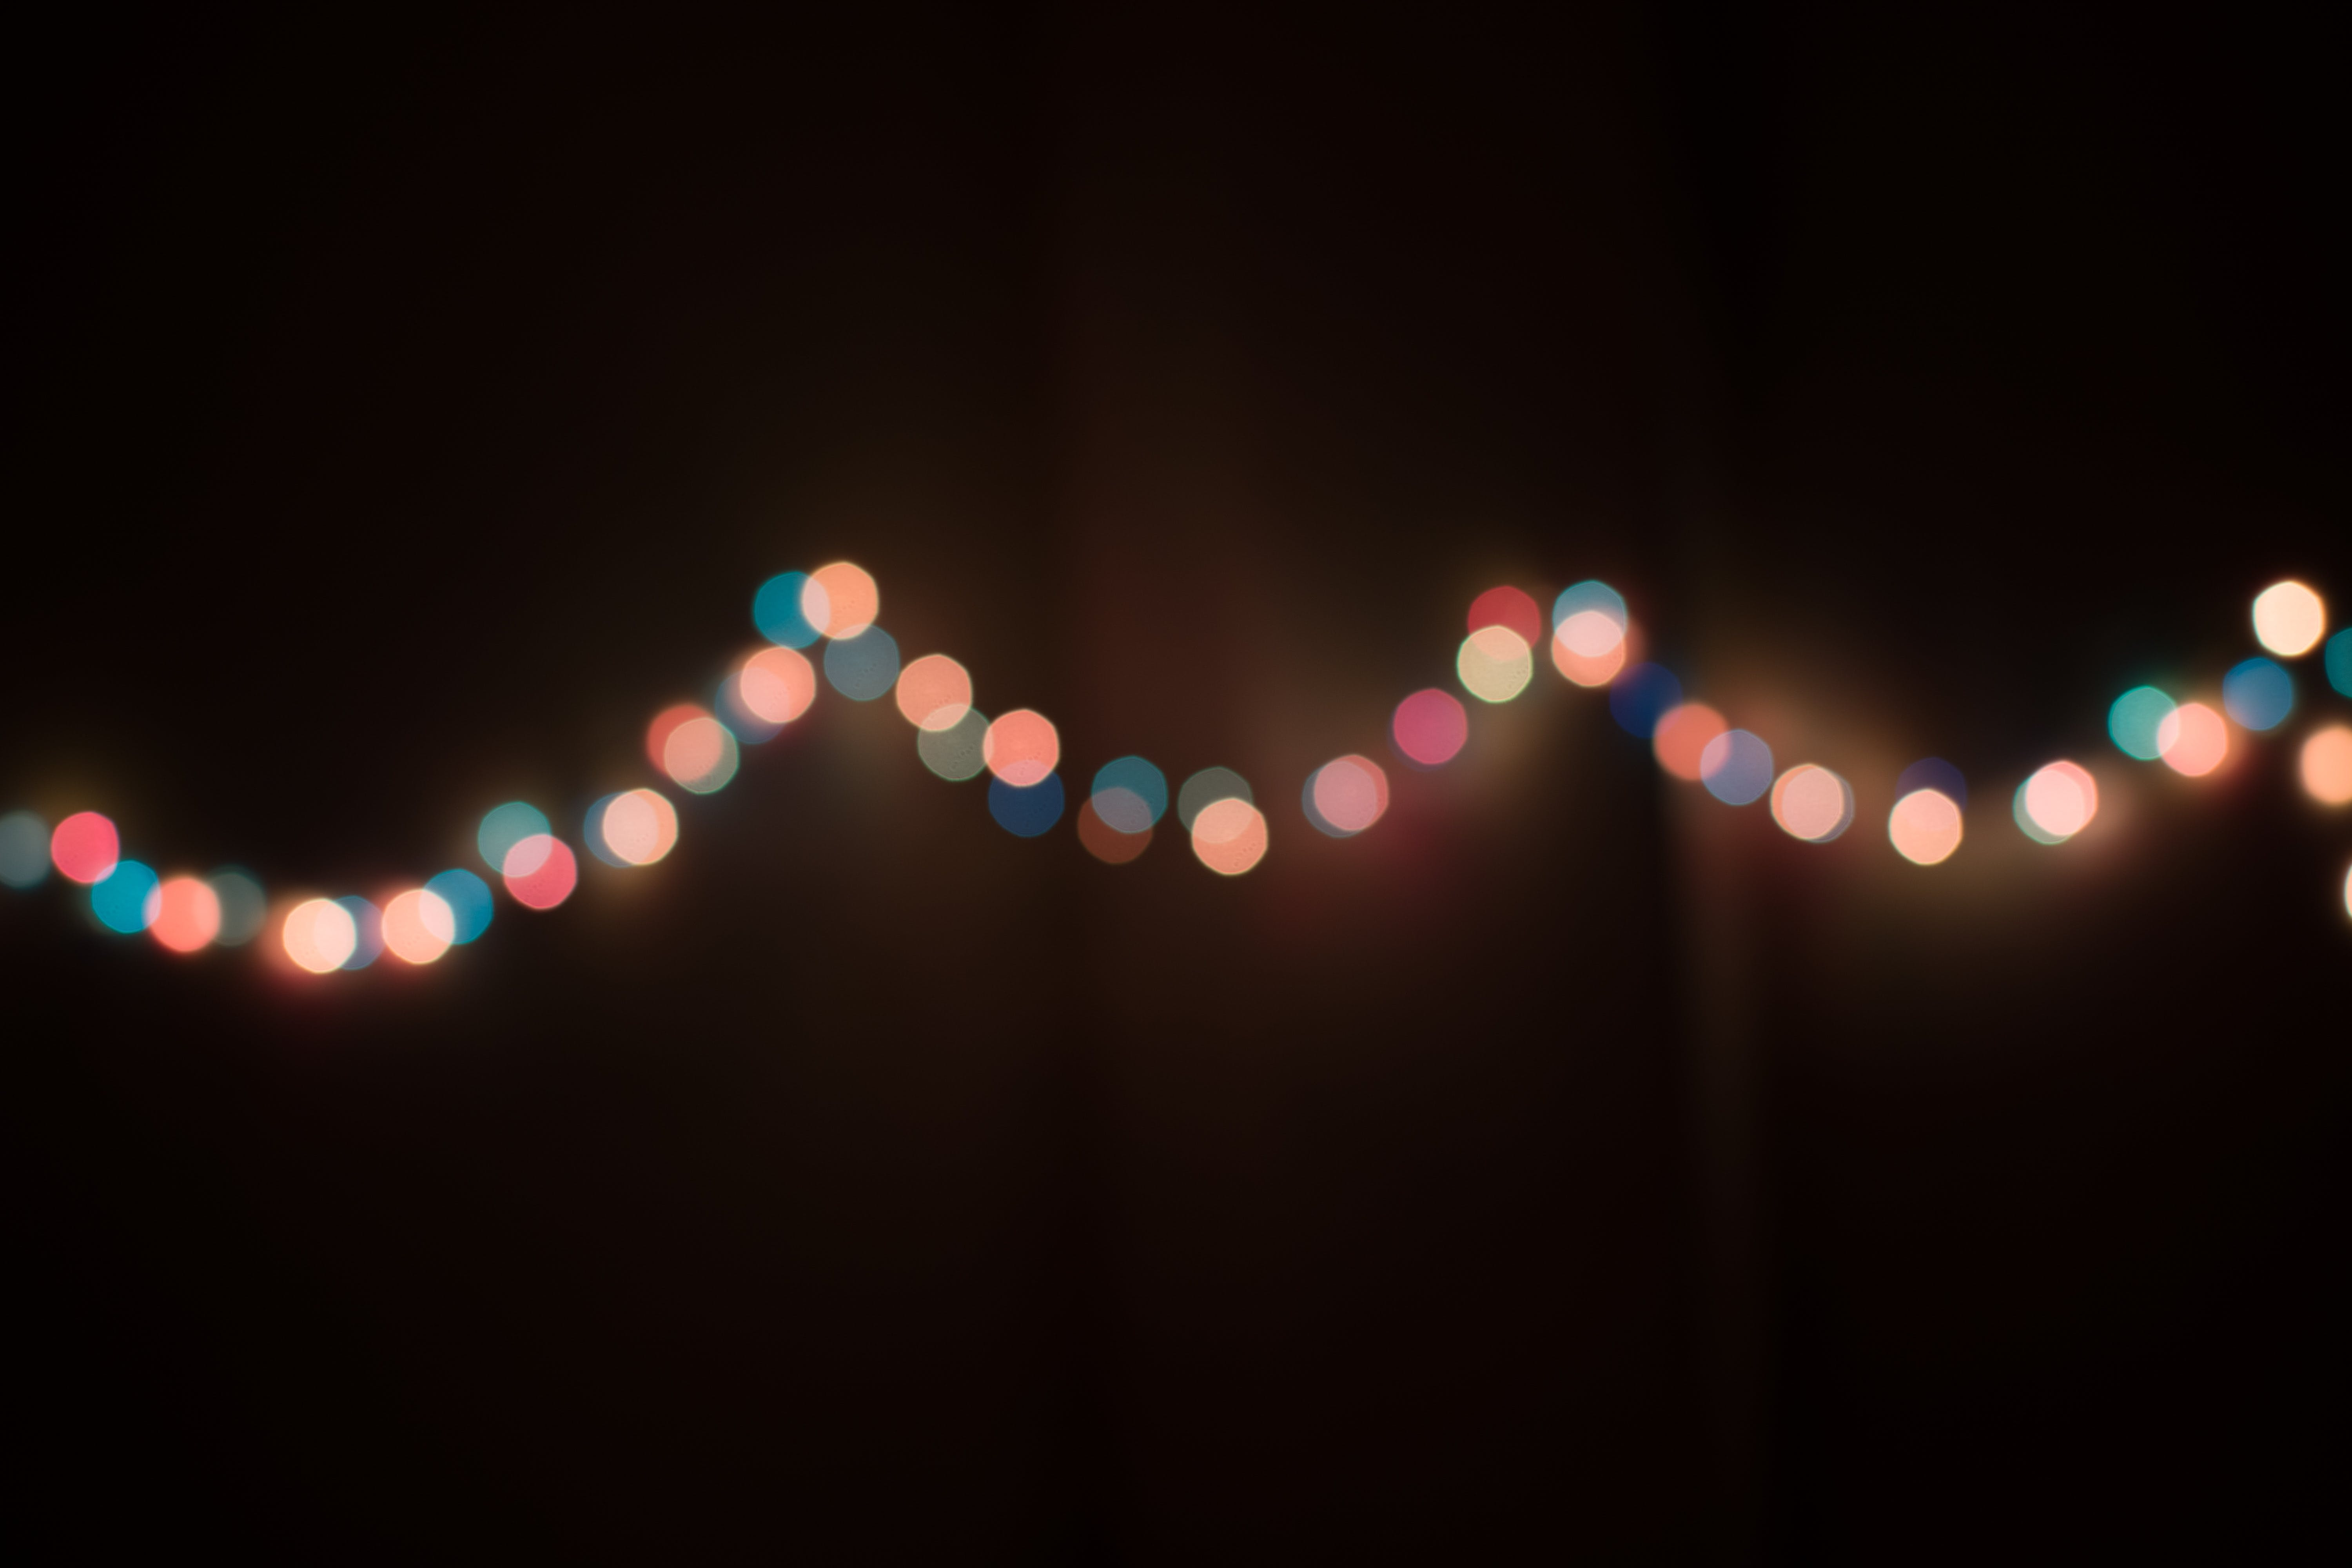 Bokeh Photography of String Lights